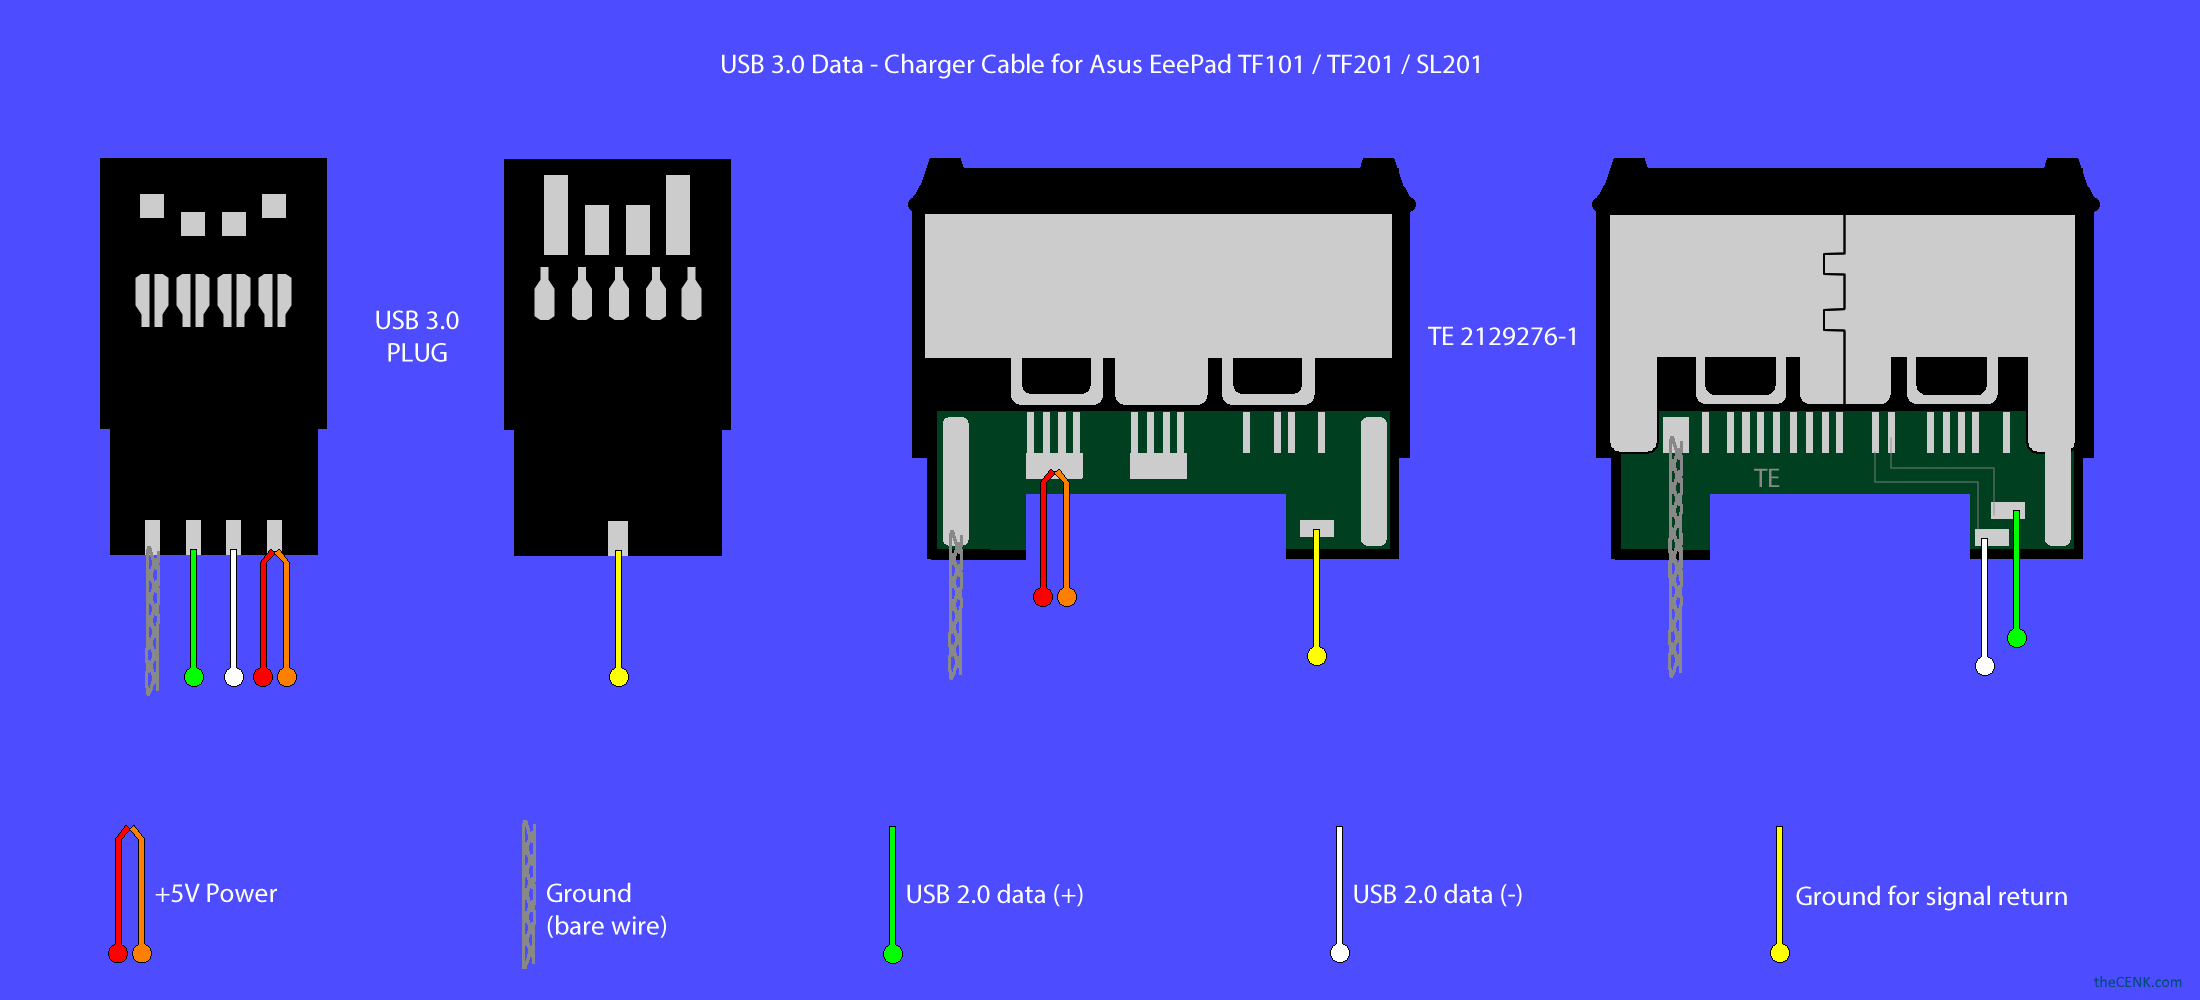 Usb 3.0 Data – Charger Cable For Asus Eeepad Tf101 / Tf201 / Sl201 - Usb 3.0 Cable Wiring Diagram